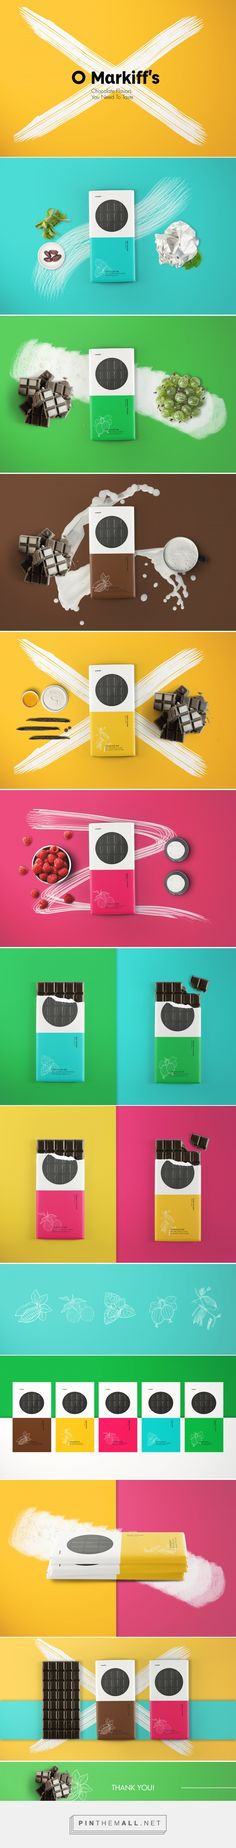 O Markiff's Chocolate Branding and Packaging by Pawel Kociszewski   Fivestar Branding Agency – Design and Branding Agency & Curated Inspiration Gallery